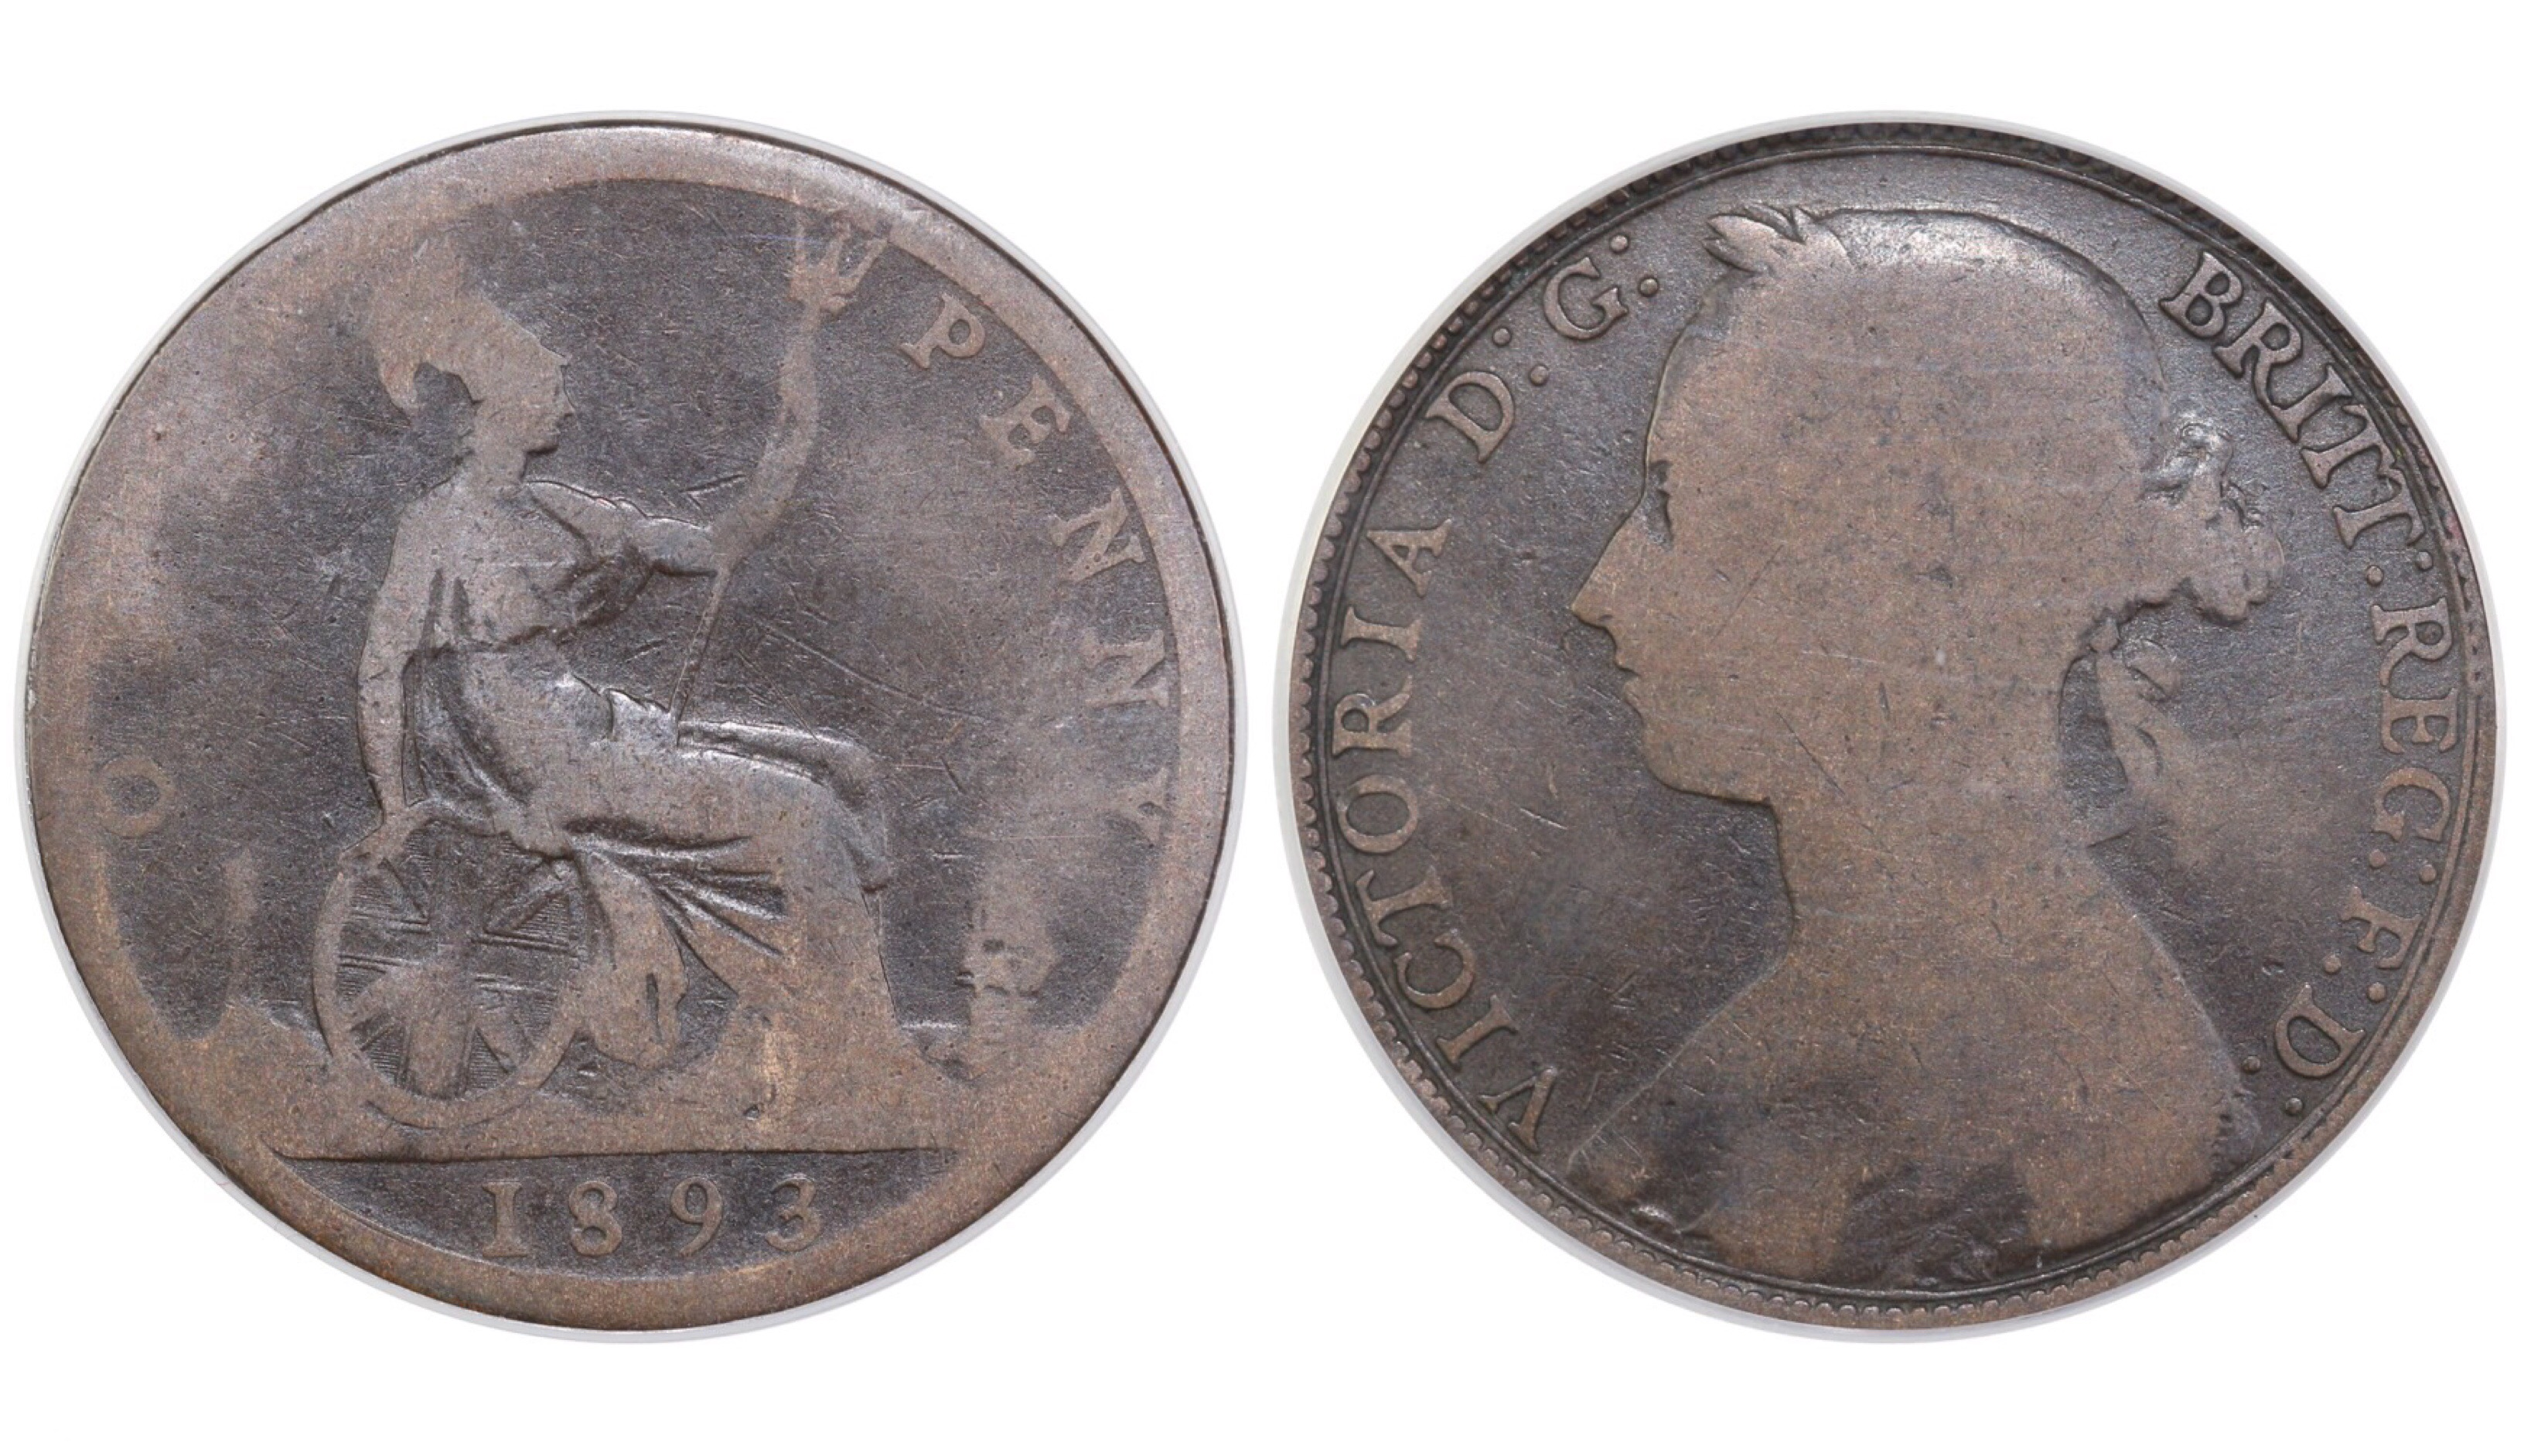 1893 Penny, 3 over 2, CGS 5, Victoria, Gouby BP1893B